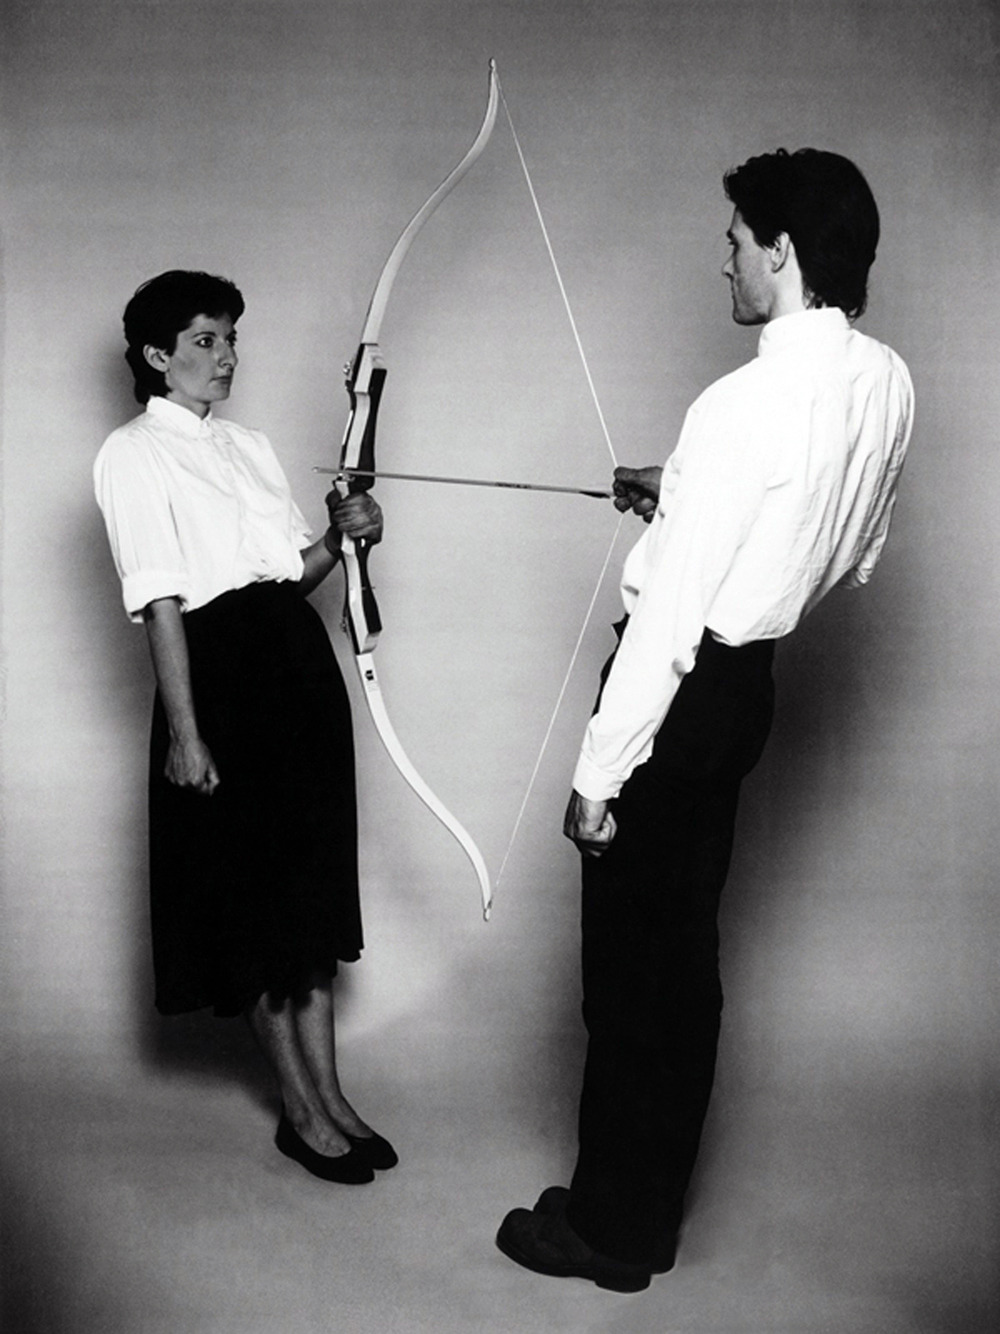 erraticminds:  likeafieldmouse:  Marina and Ulay 1. Rest Energy (1980) 2. Relation in Space (1976) 3. Imponderabilia (1977) 4. Breathing In Breathing Out (1978) 5. Interruption in Space (1977) 6. Relation in Time (1977) 7. Aaa Aaa (1978)  Love this woman.